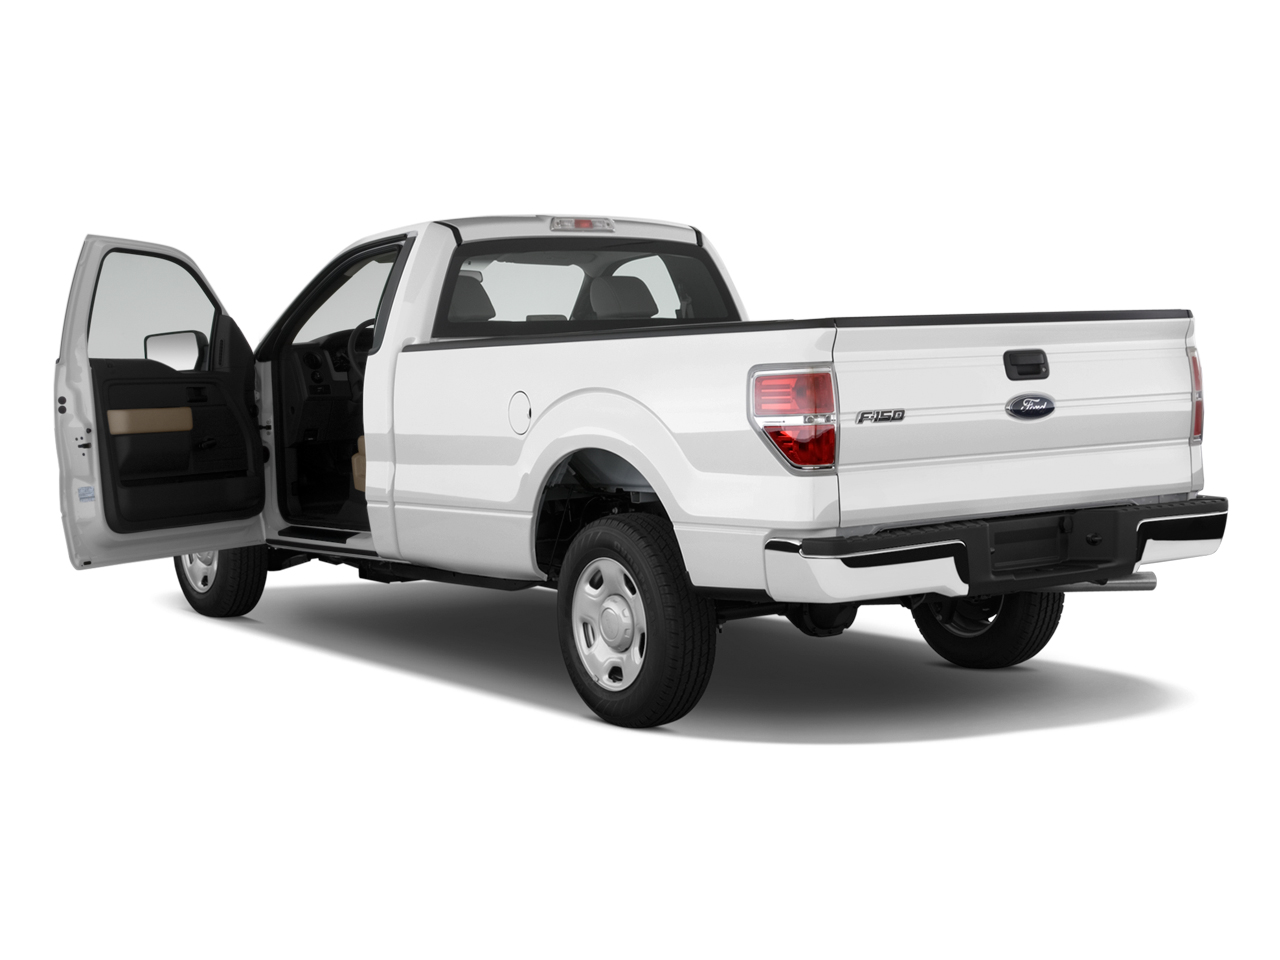 2009 ford f 150 platinum lariat 4x4 ford fullsize pickup. Black Bedroom Furniture Sets. Home Design Ideas